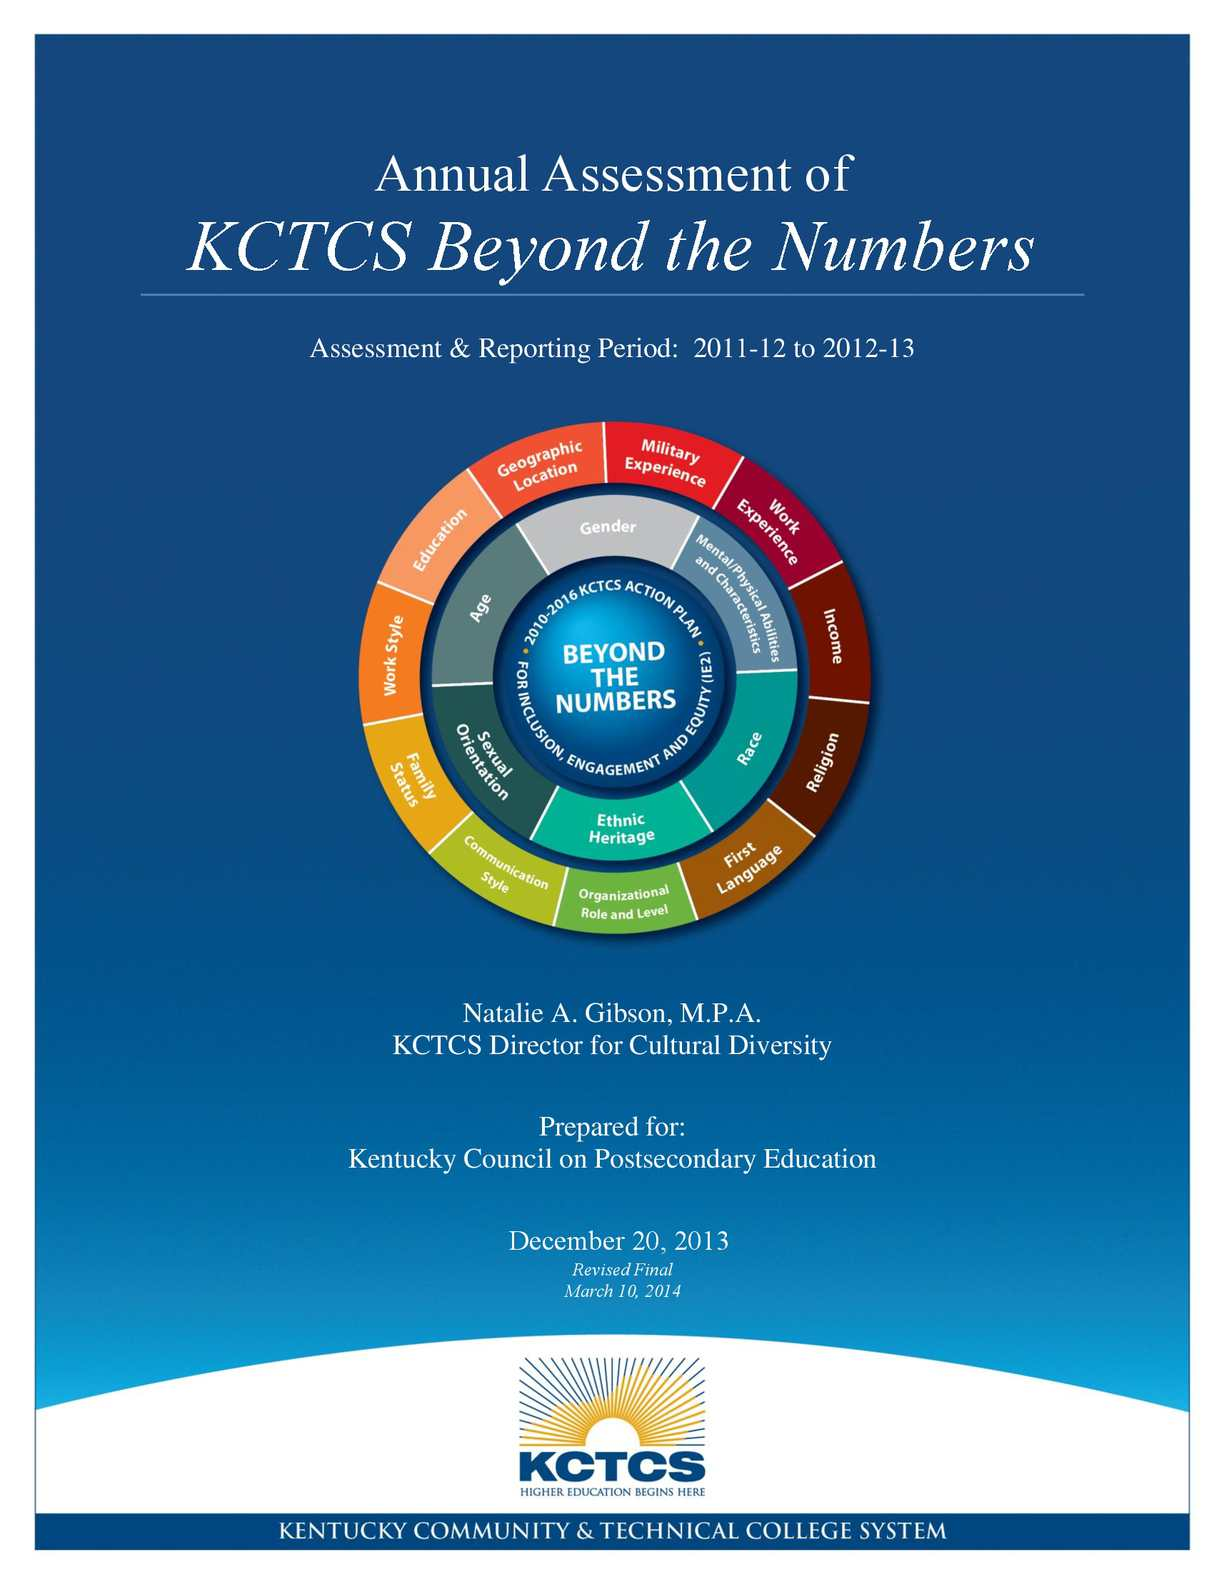 Calam O Annual Assessment Of KCTCS Beyond The Numbers 2014